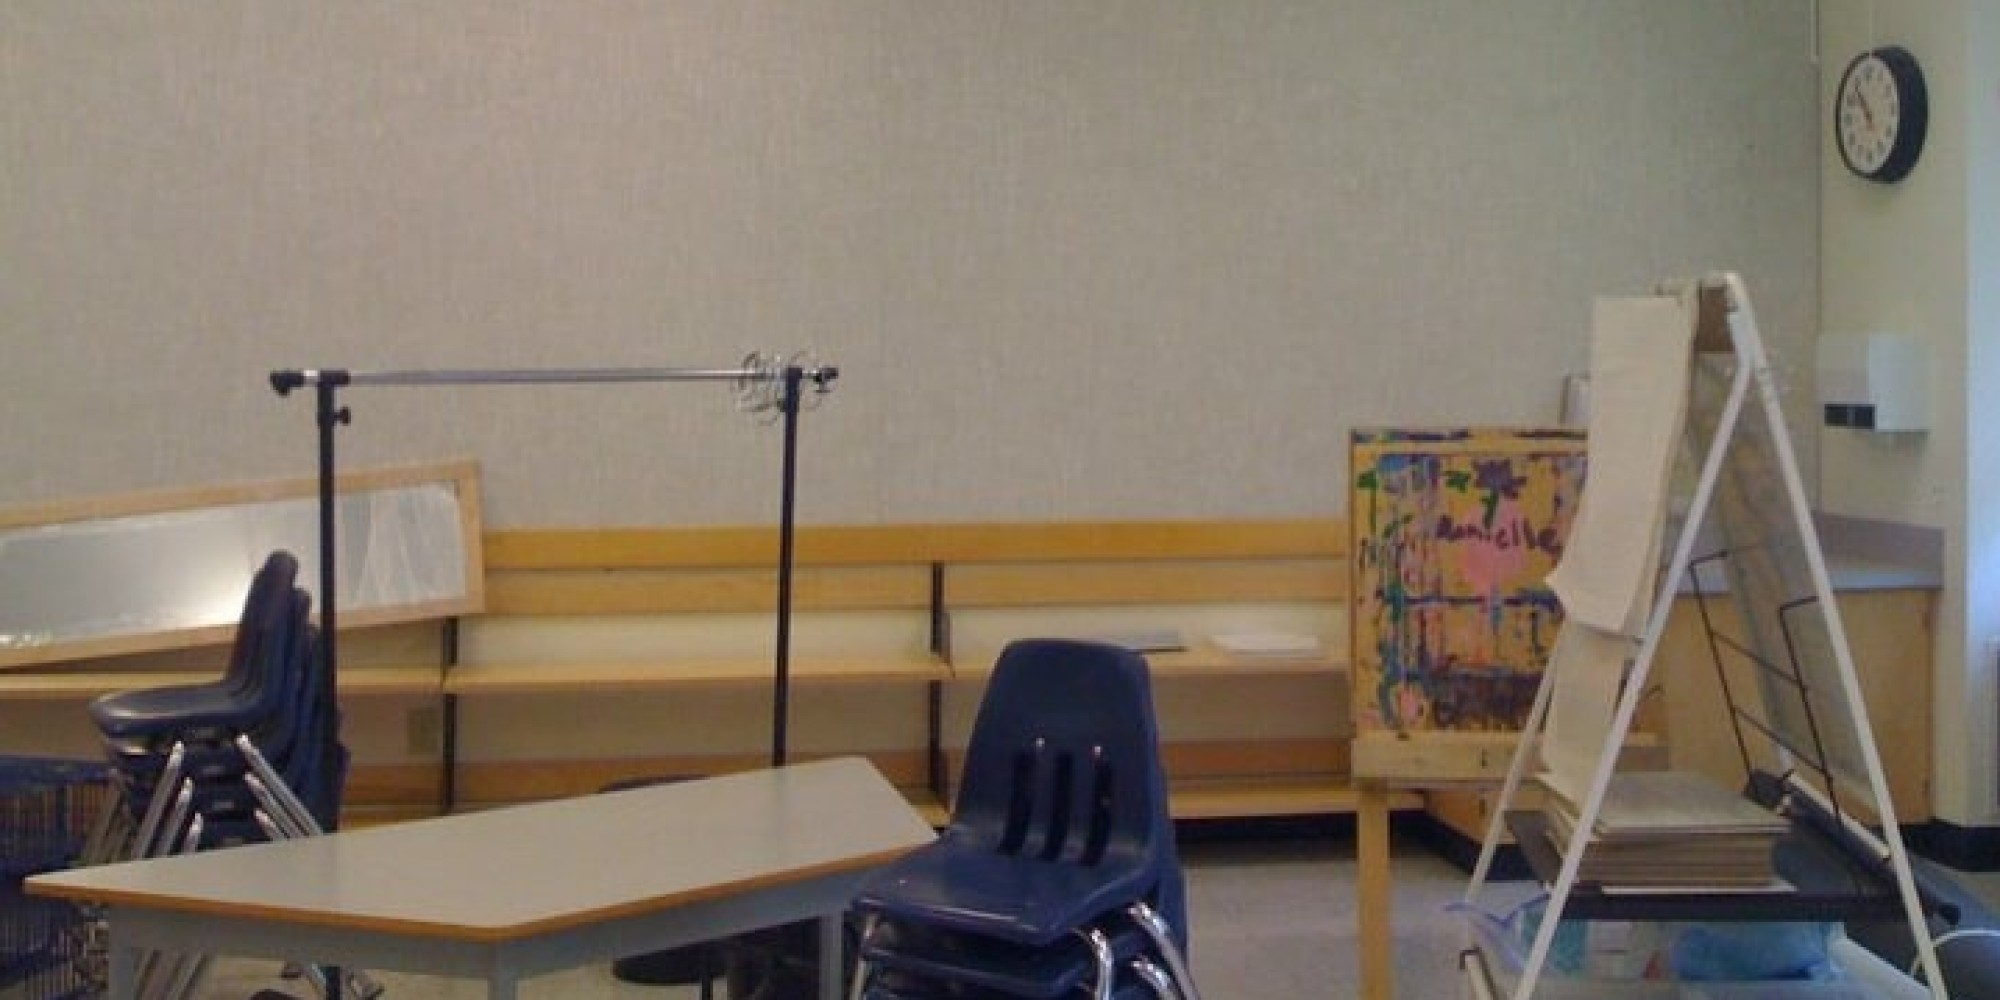 Classroom Decor Buy ~ Here s what canada public school classrooms look like if